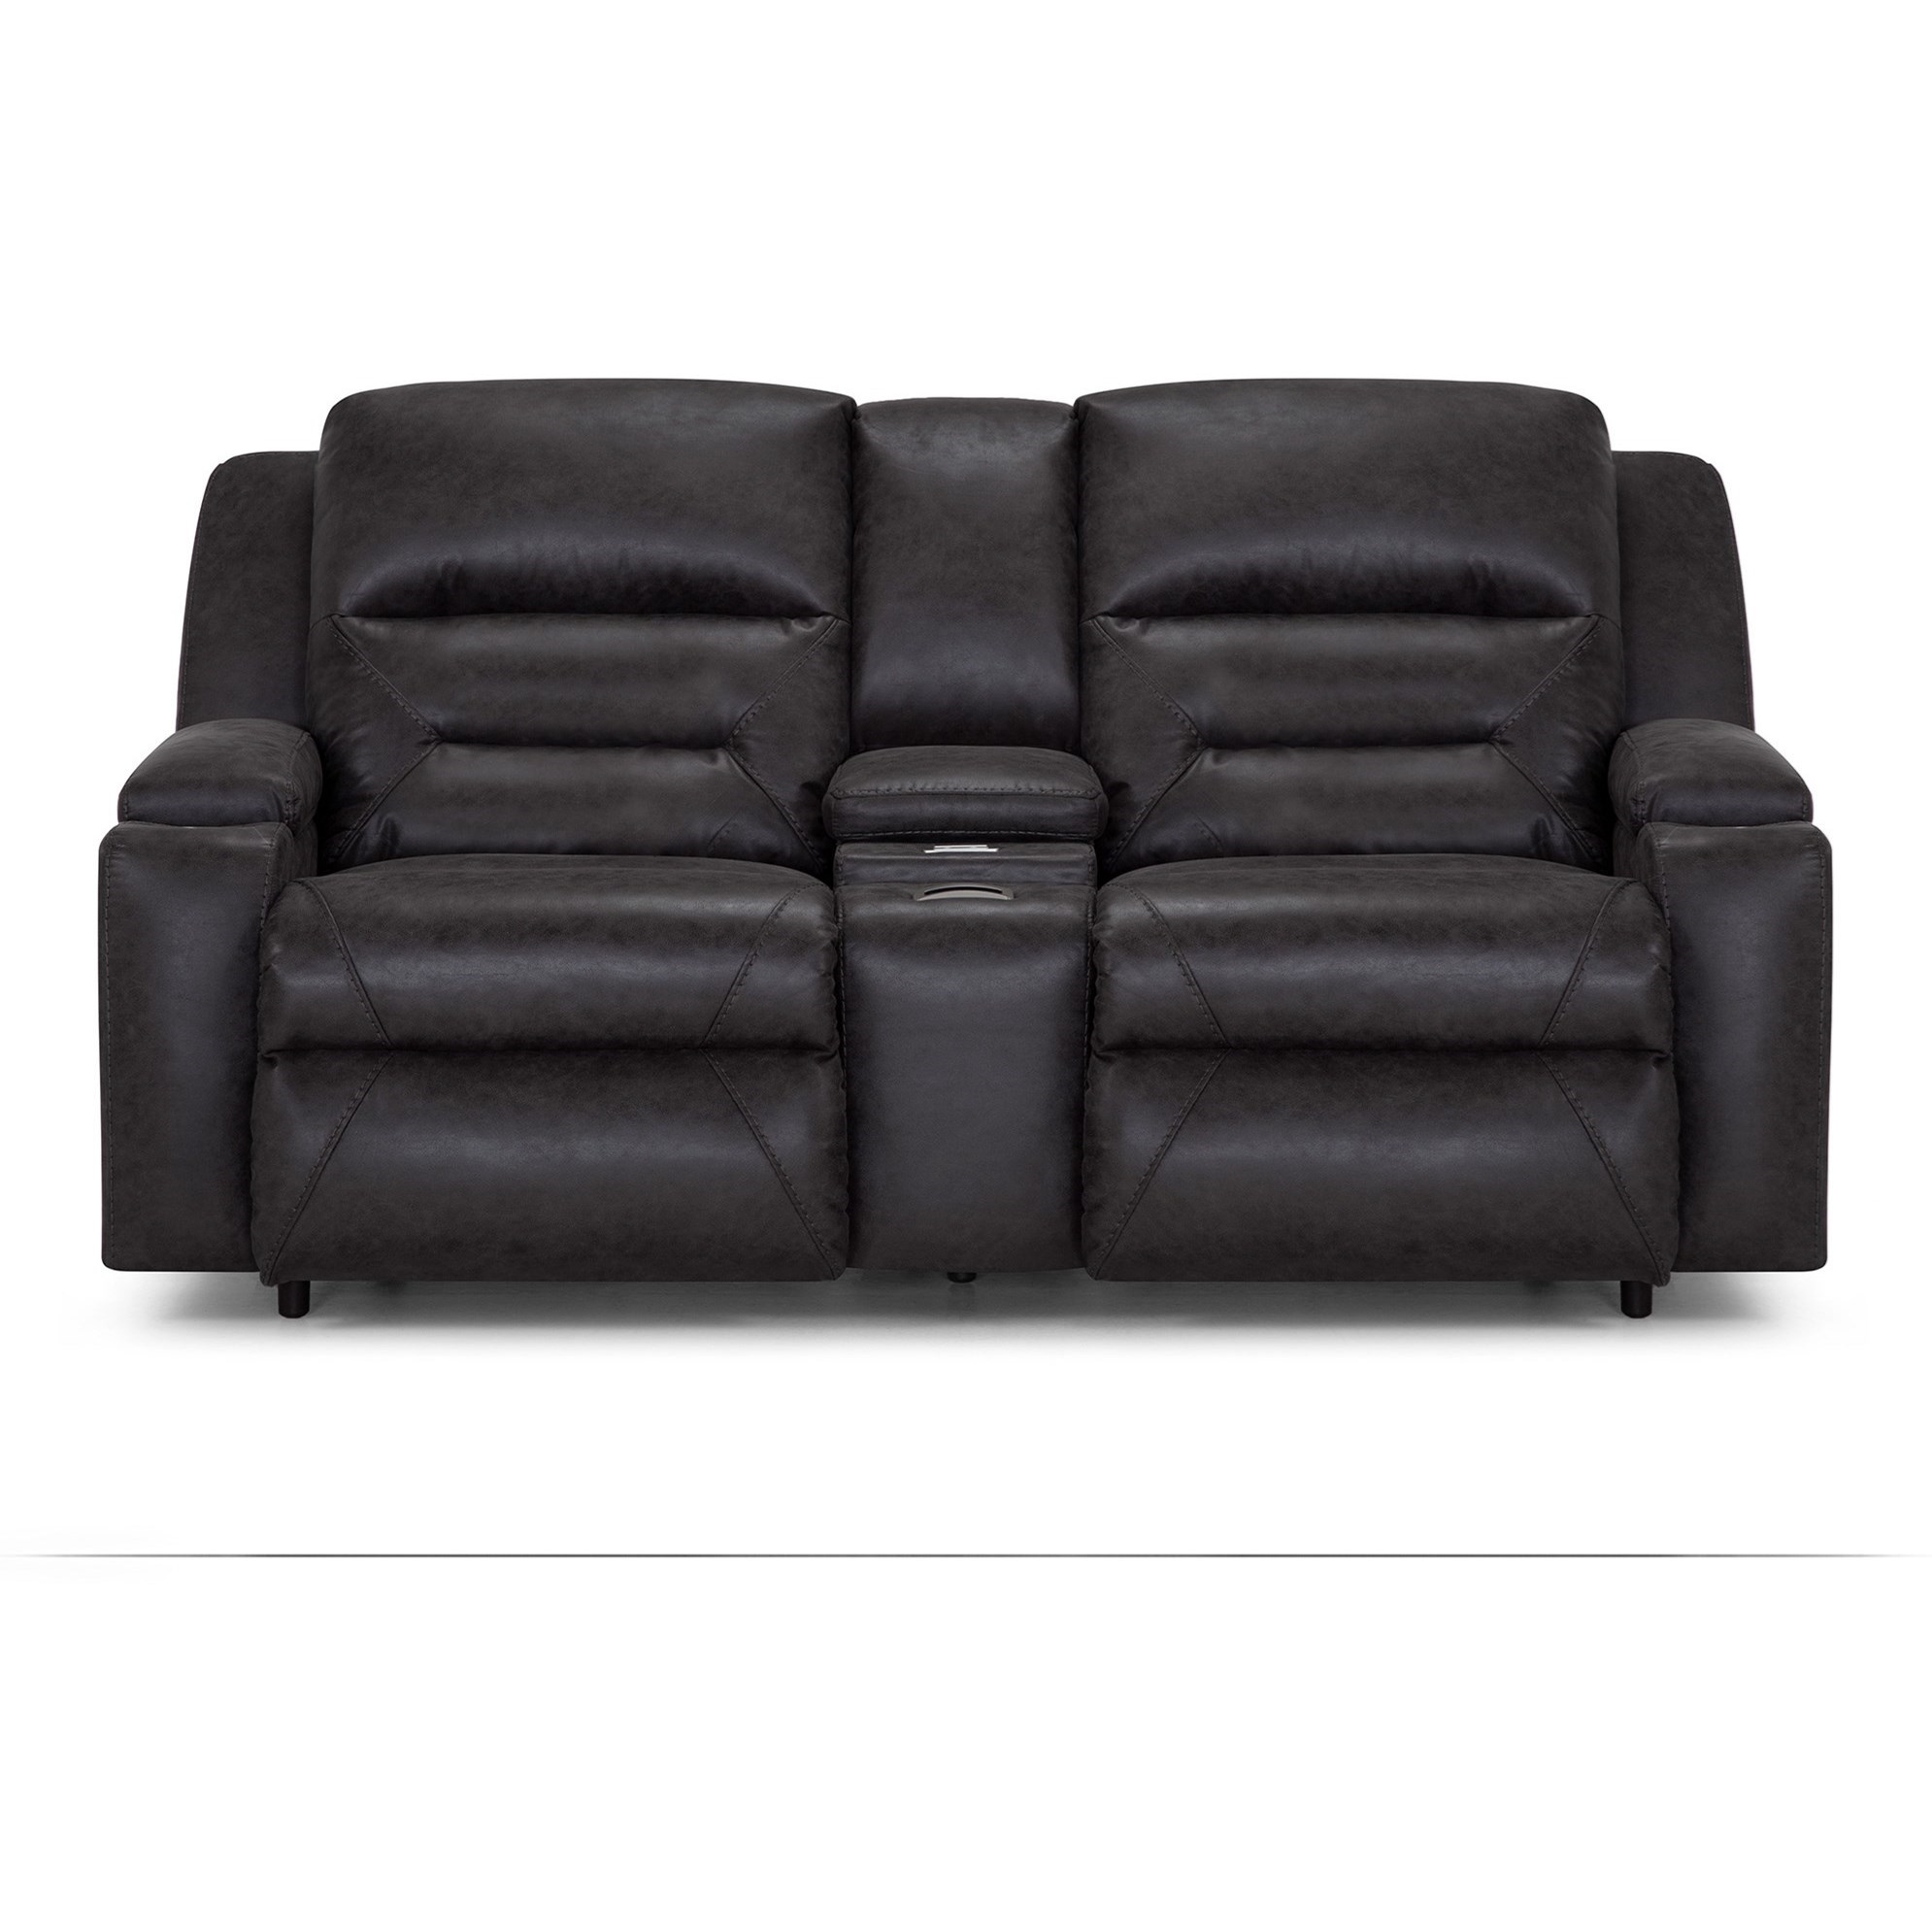 Beacon Power Reclining Loveseat by Franklin at Virginia Furniture Market